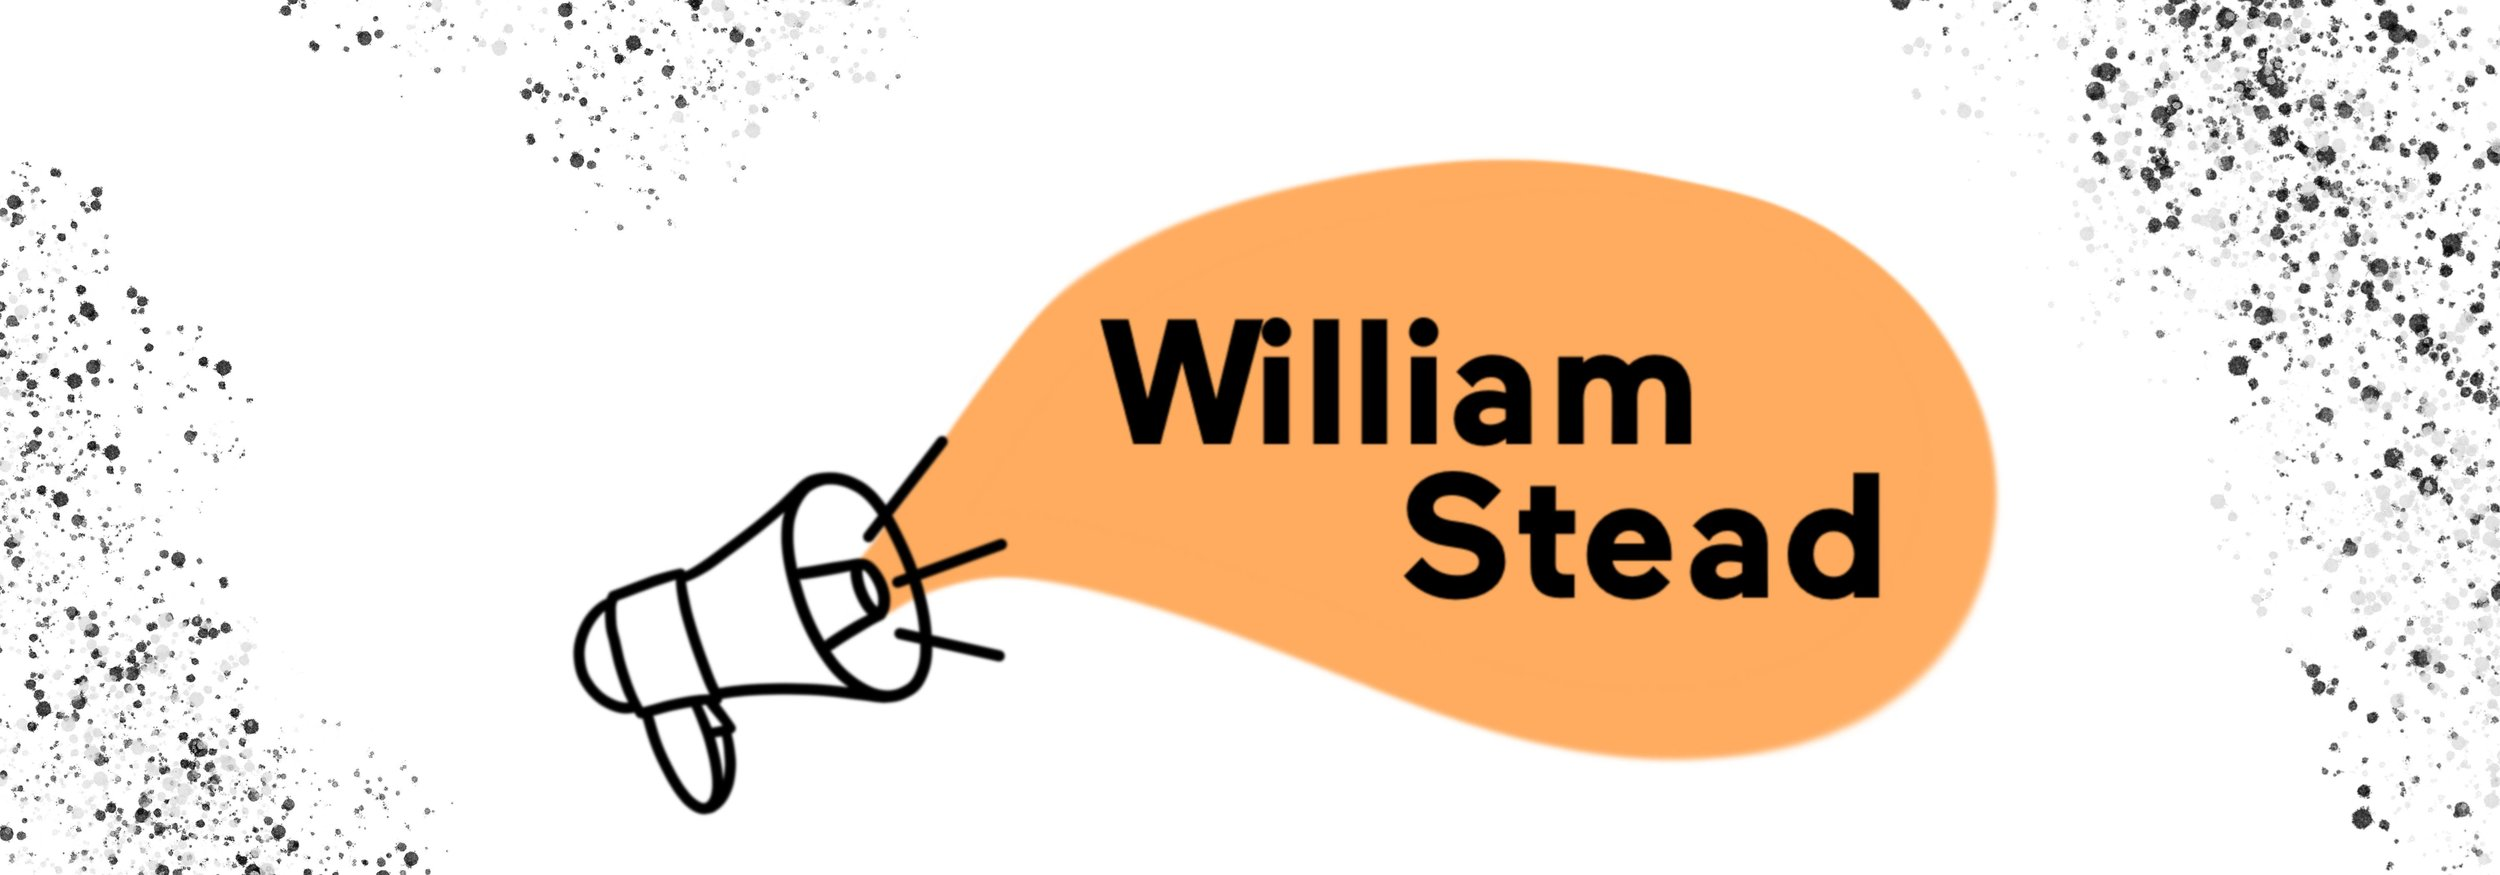 William_Stead_Website_Banner.jpg